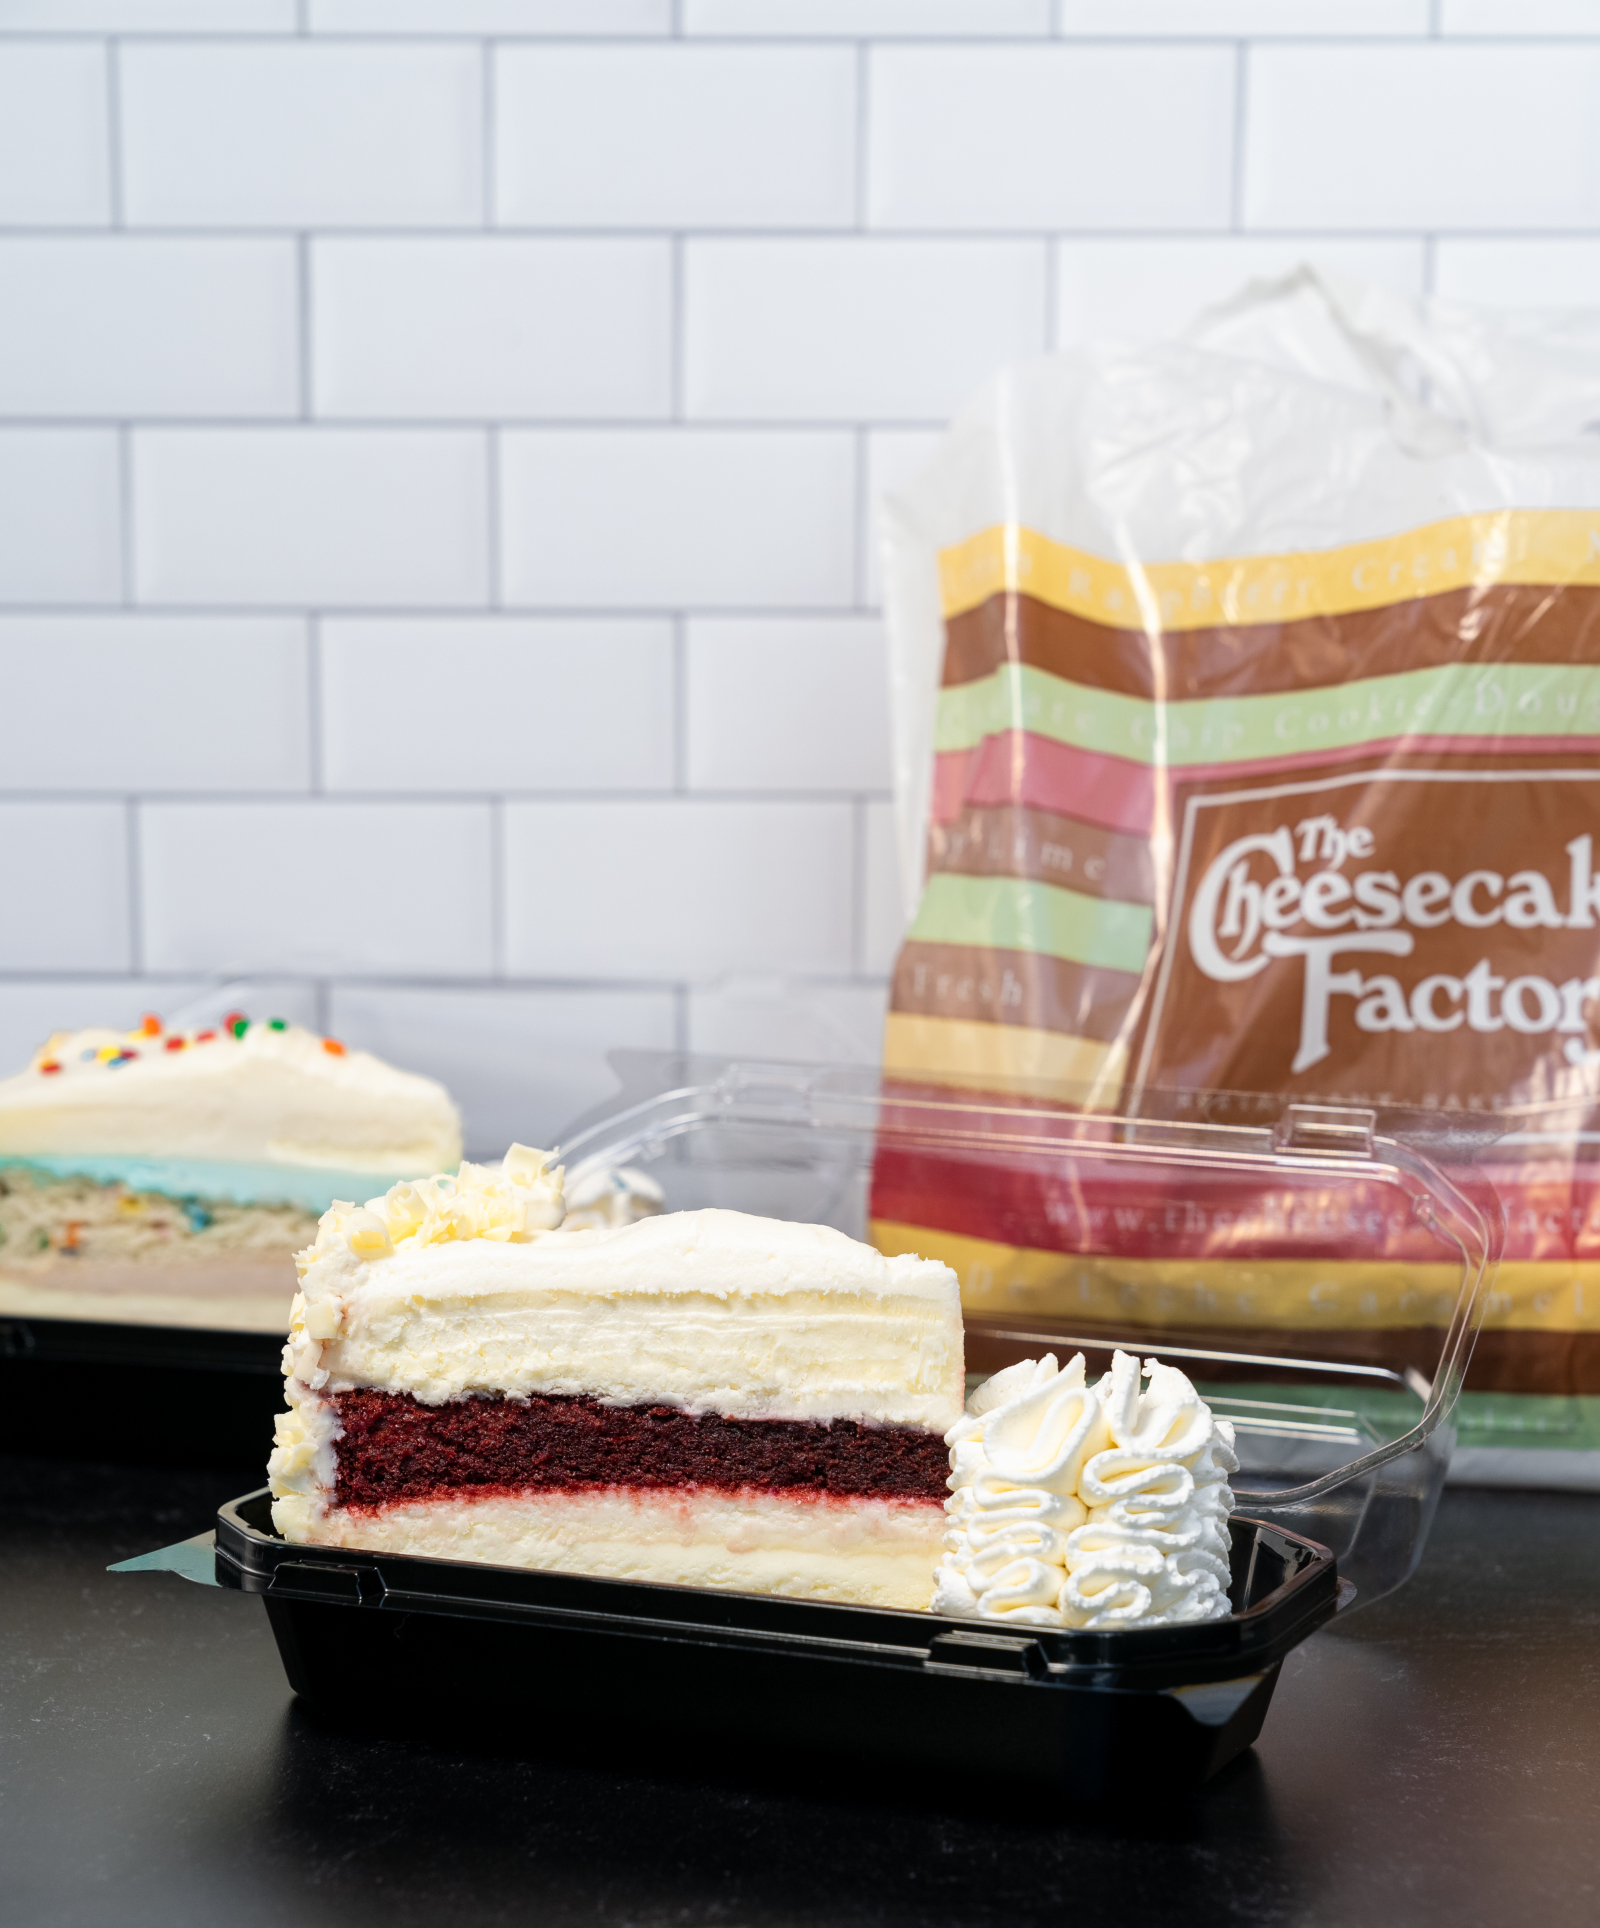 Cheesecake Factory and DoorDash team up for a free slice at lunch